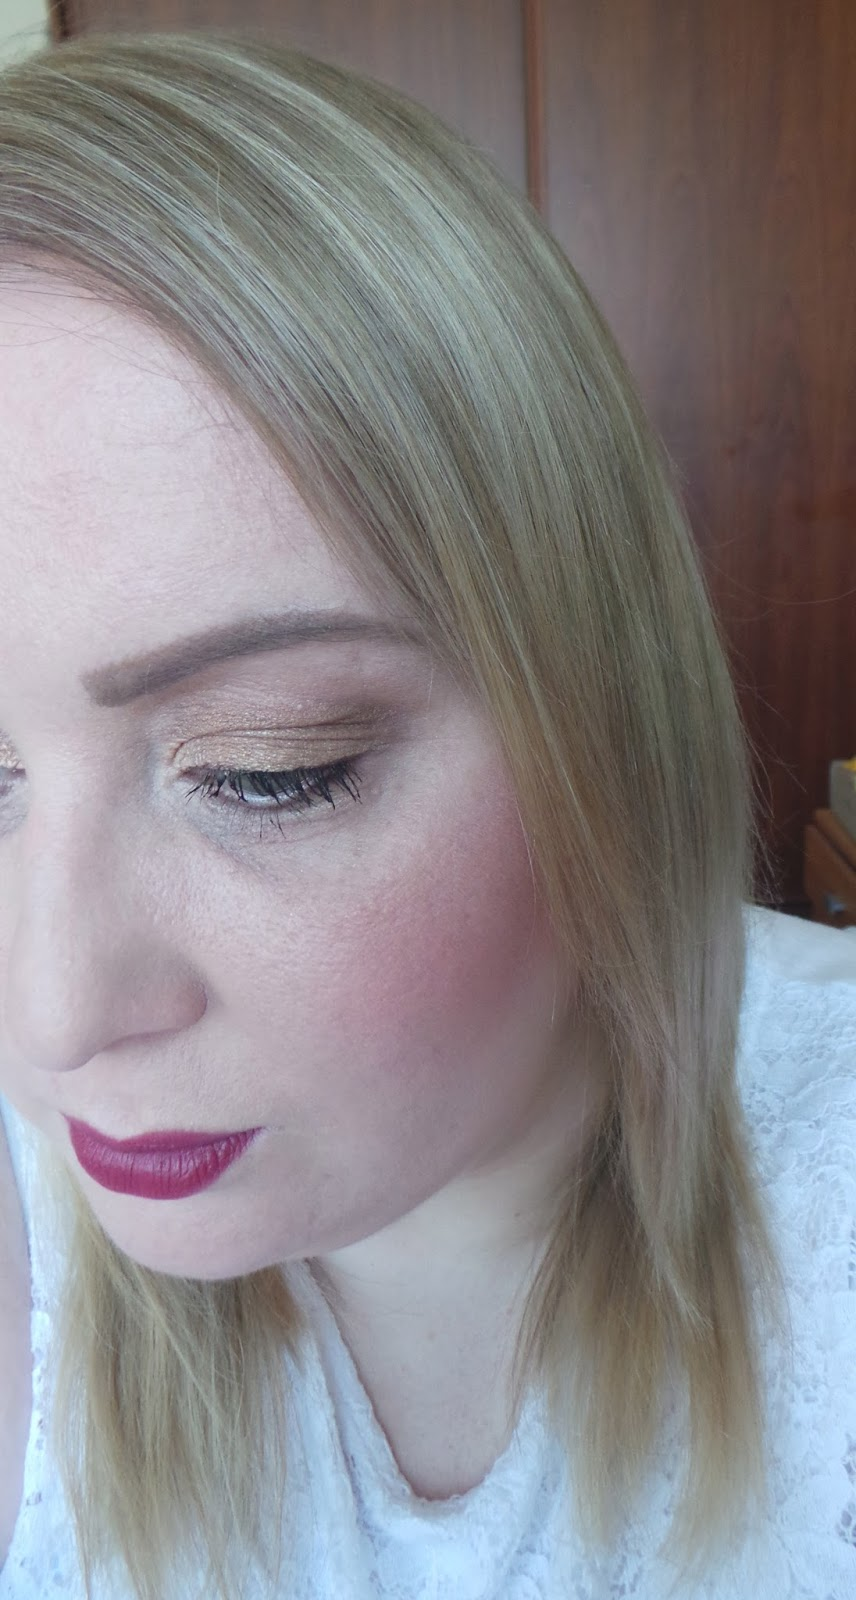 Charlotte Tilbury Cheek to Chic Swish and Pop blusher in Ecstasy